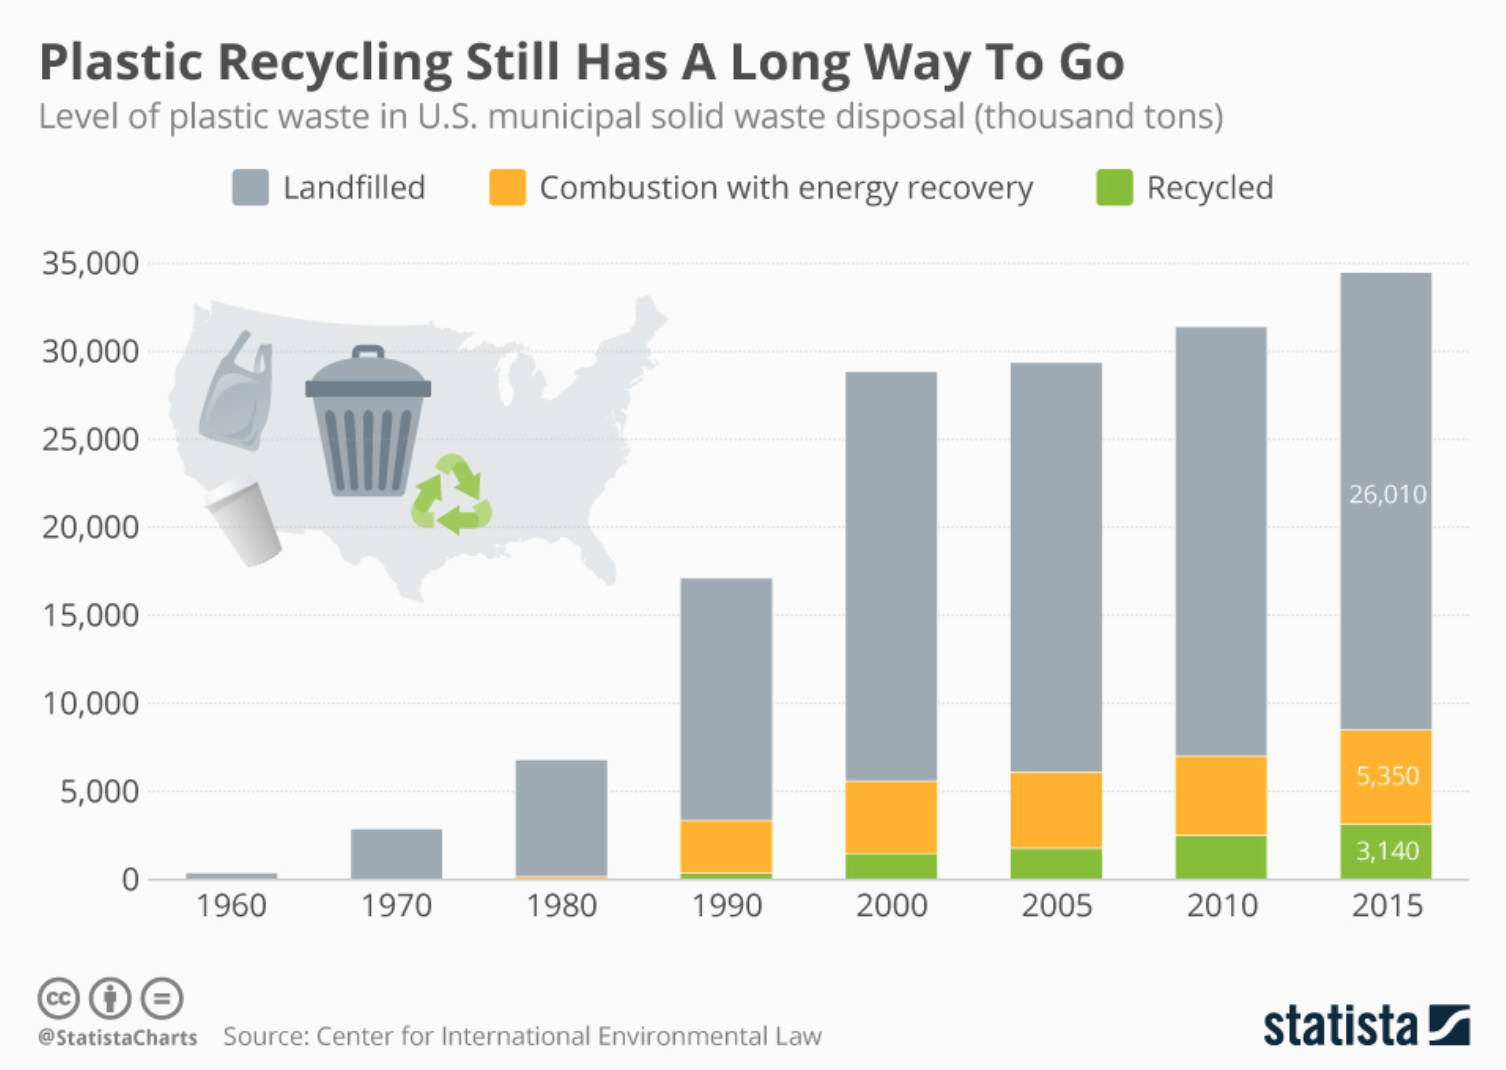 bar graph depicting plastic recycling in united states, how much is landfilled vs. combustion with energy recovery vs. recycled